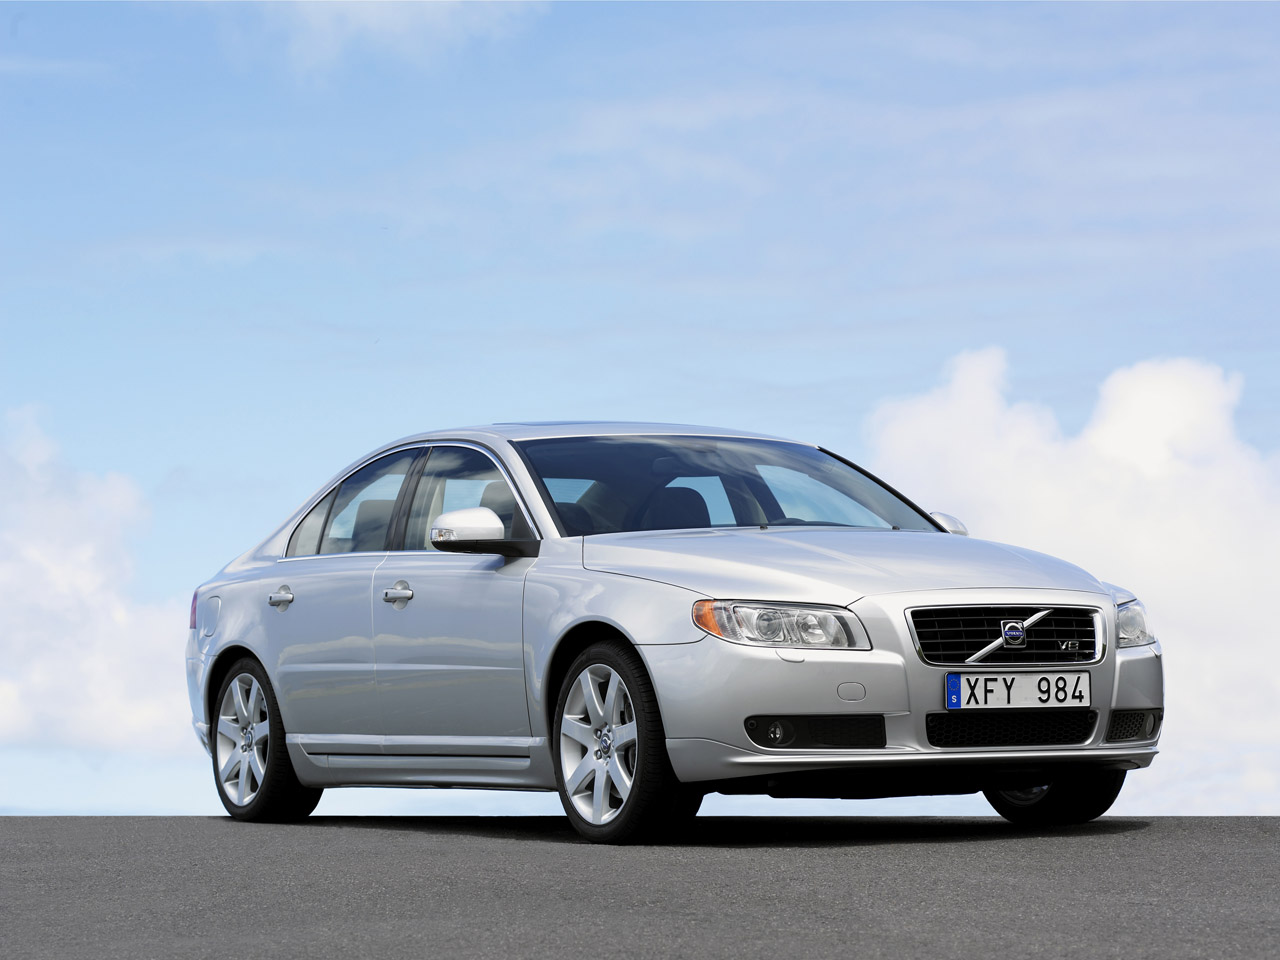 2007 volvo s80 10 Steering issues makes Volvo recall 2007 S80 Sedan